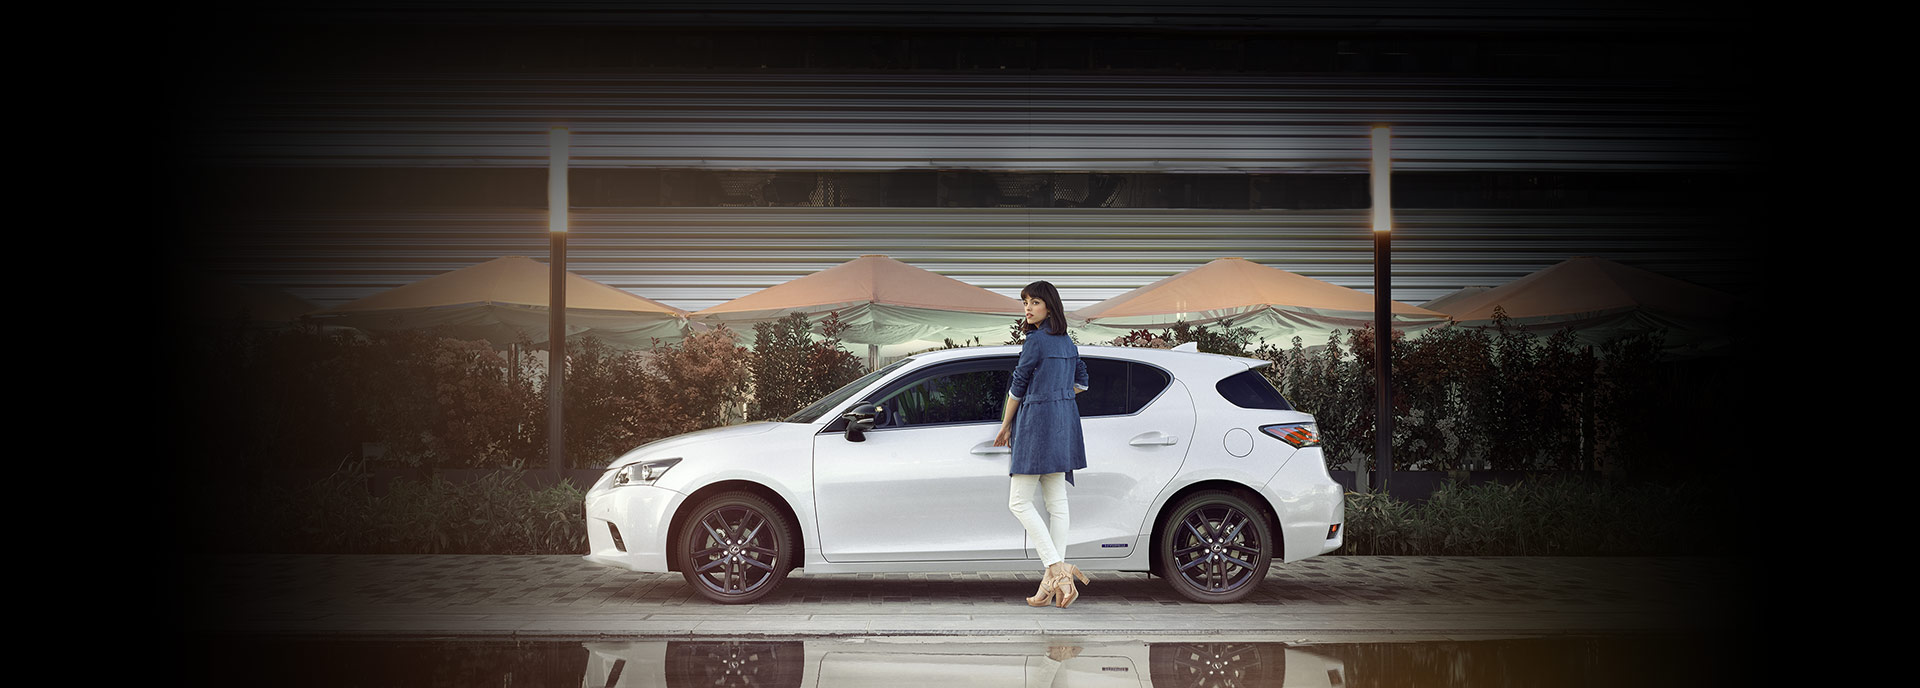 Homepage-CT200h-SPORT-EDITION-1920